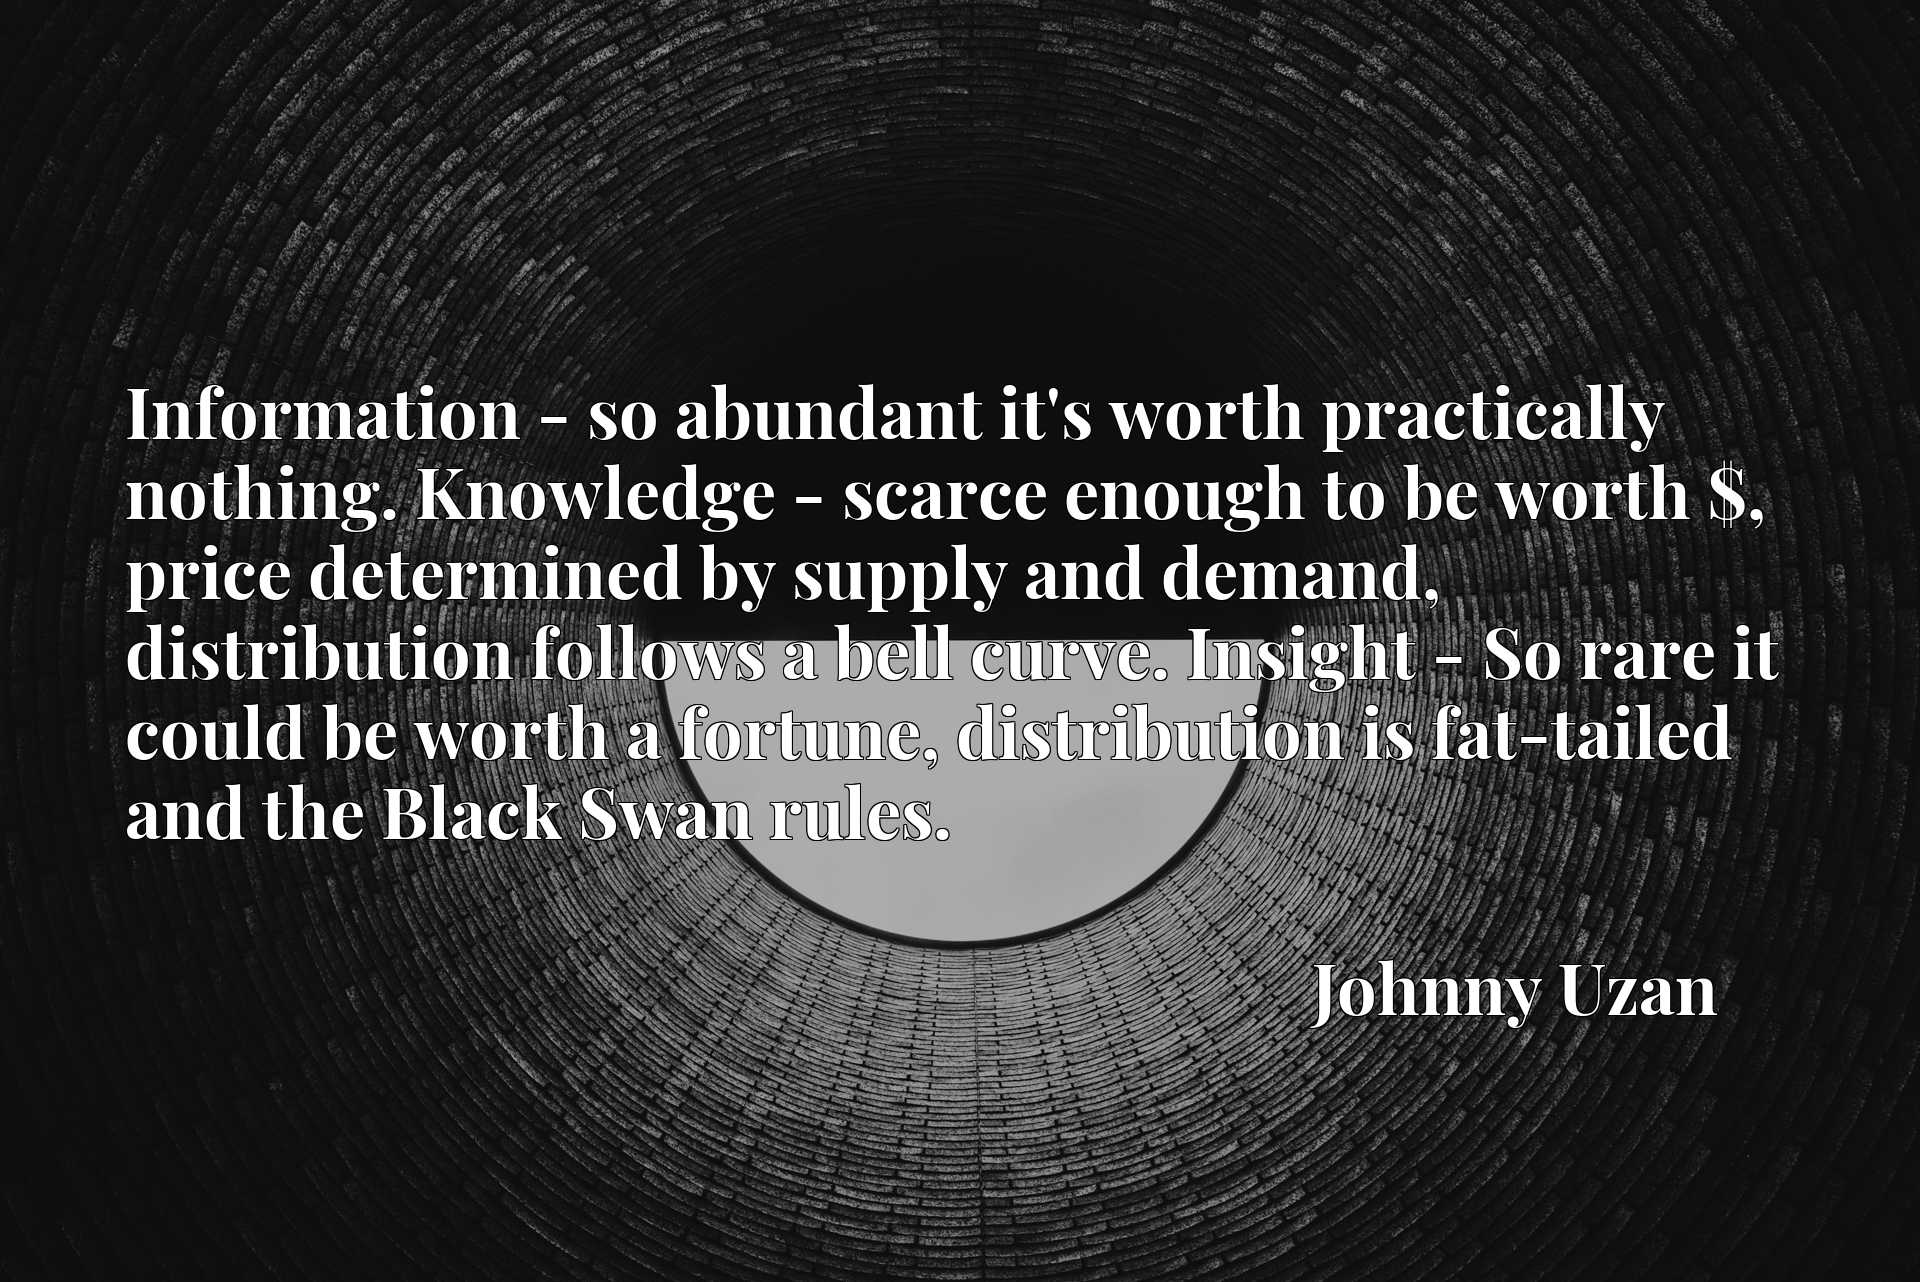 Information - so abundant it's worth practically nothing. Knowledge - scarce enough to be worth $, price determined by supply and demand, distribution follows a bell curve. Insight - So rare it could be worth a fortune, distribution is fat-tailed and the Black Swan rules.